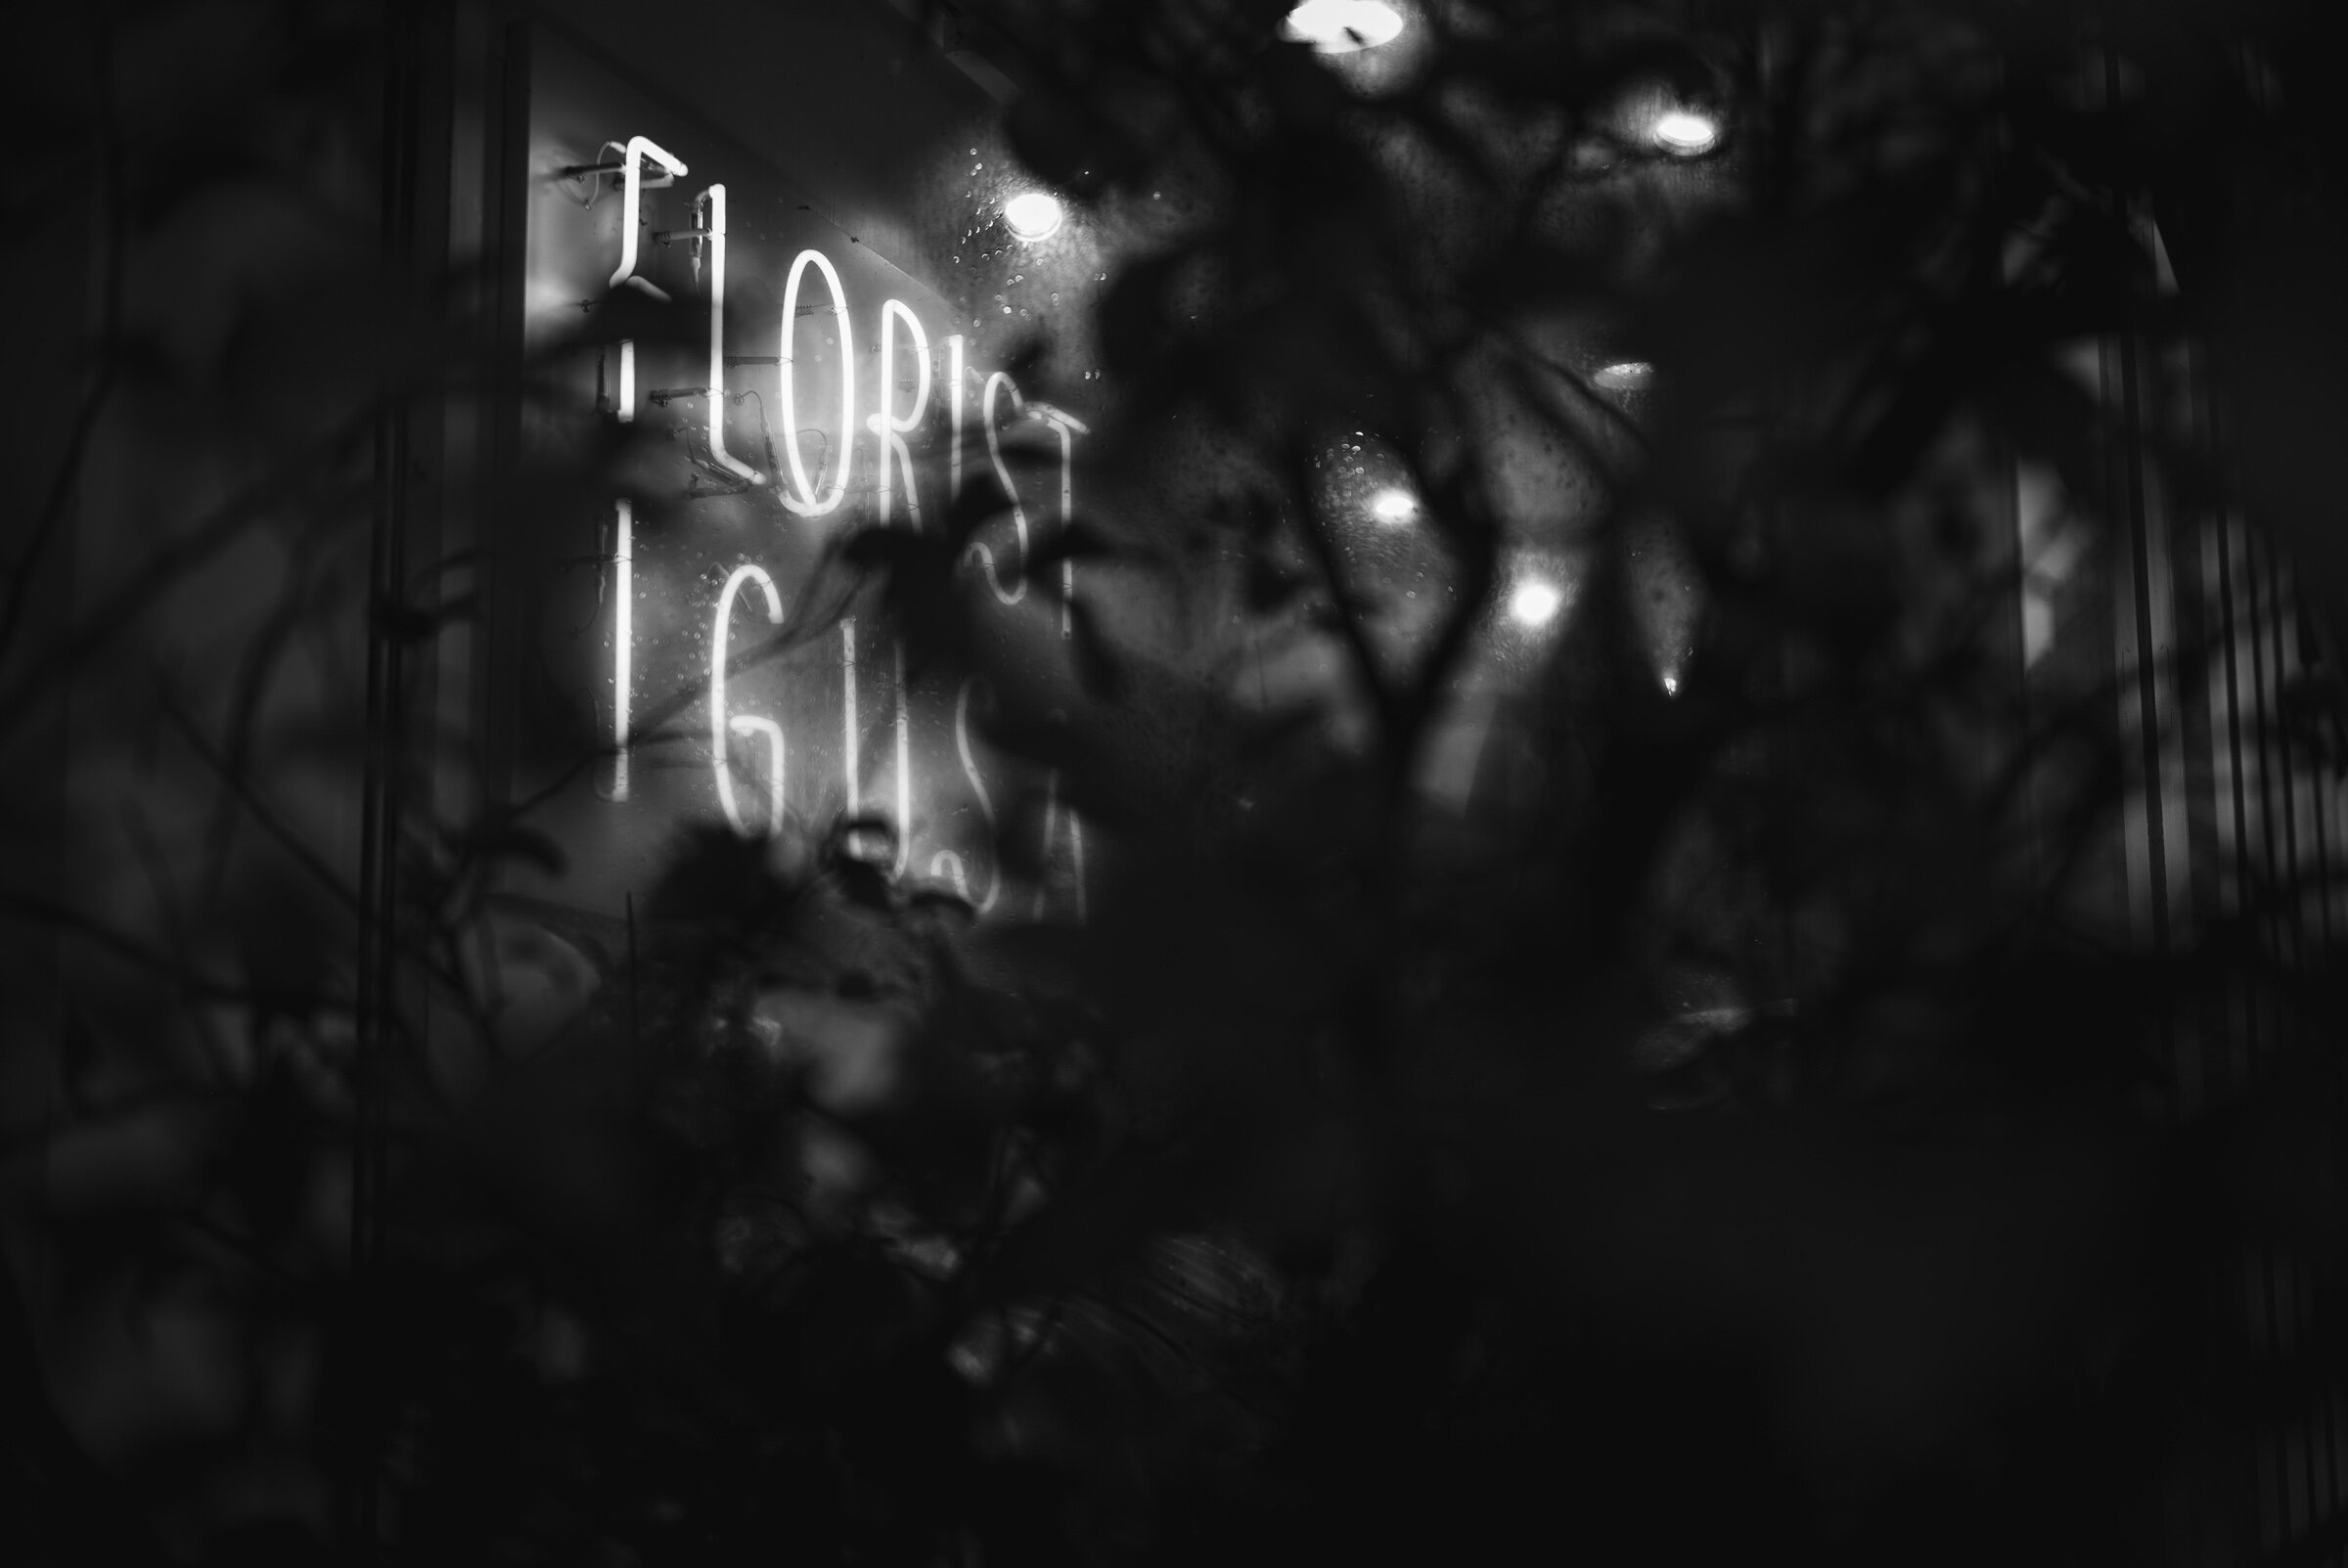 The Florist - Coming soon